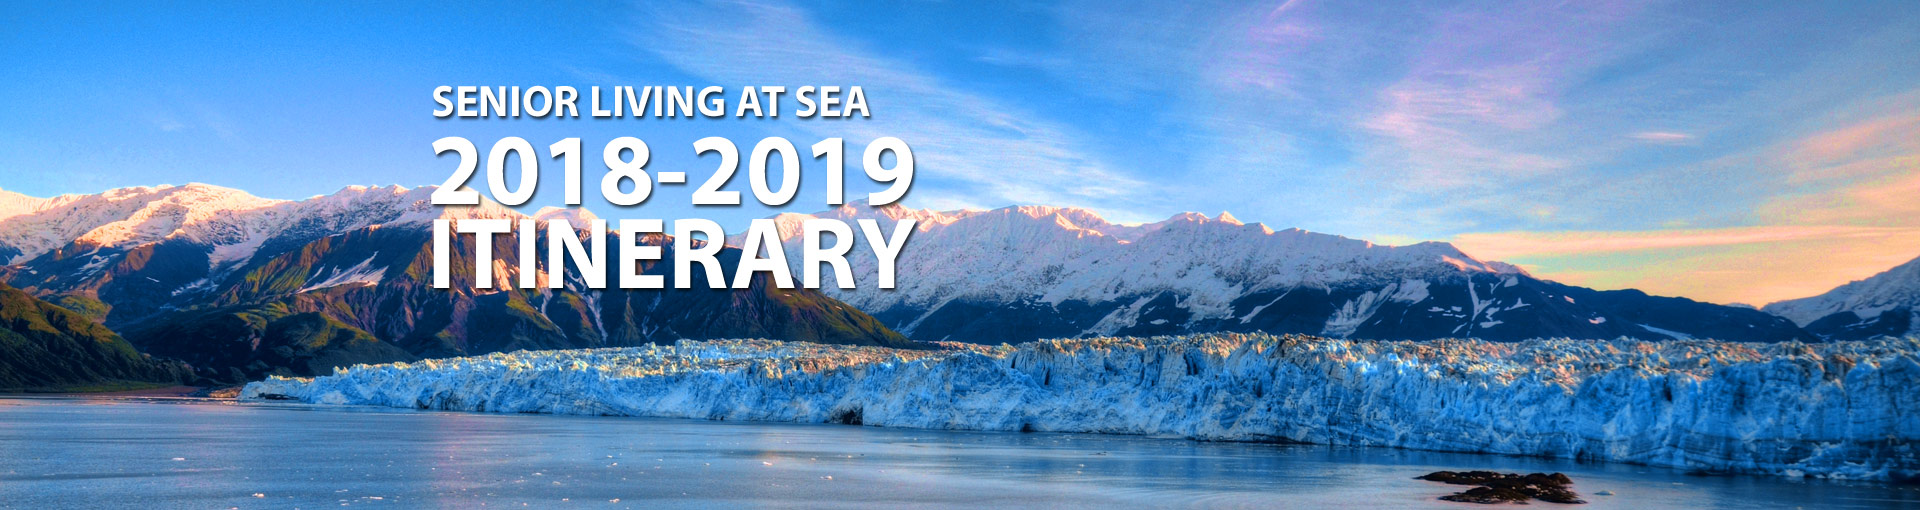 Senior Living at Sea Itinerary - Alaska glaciers